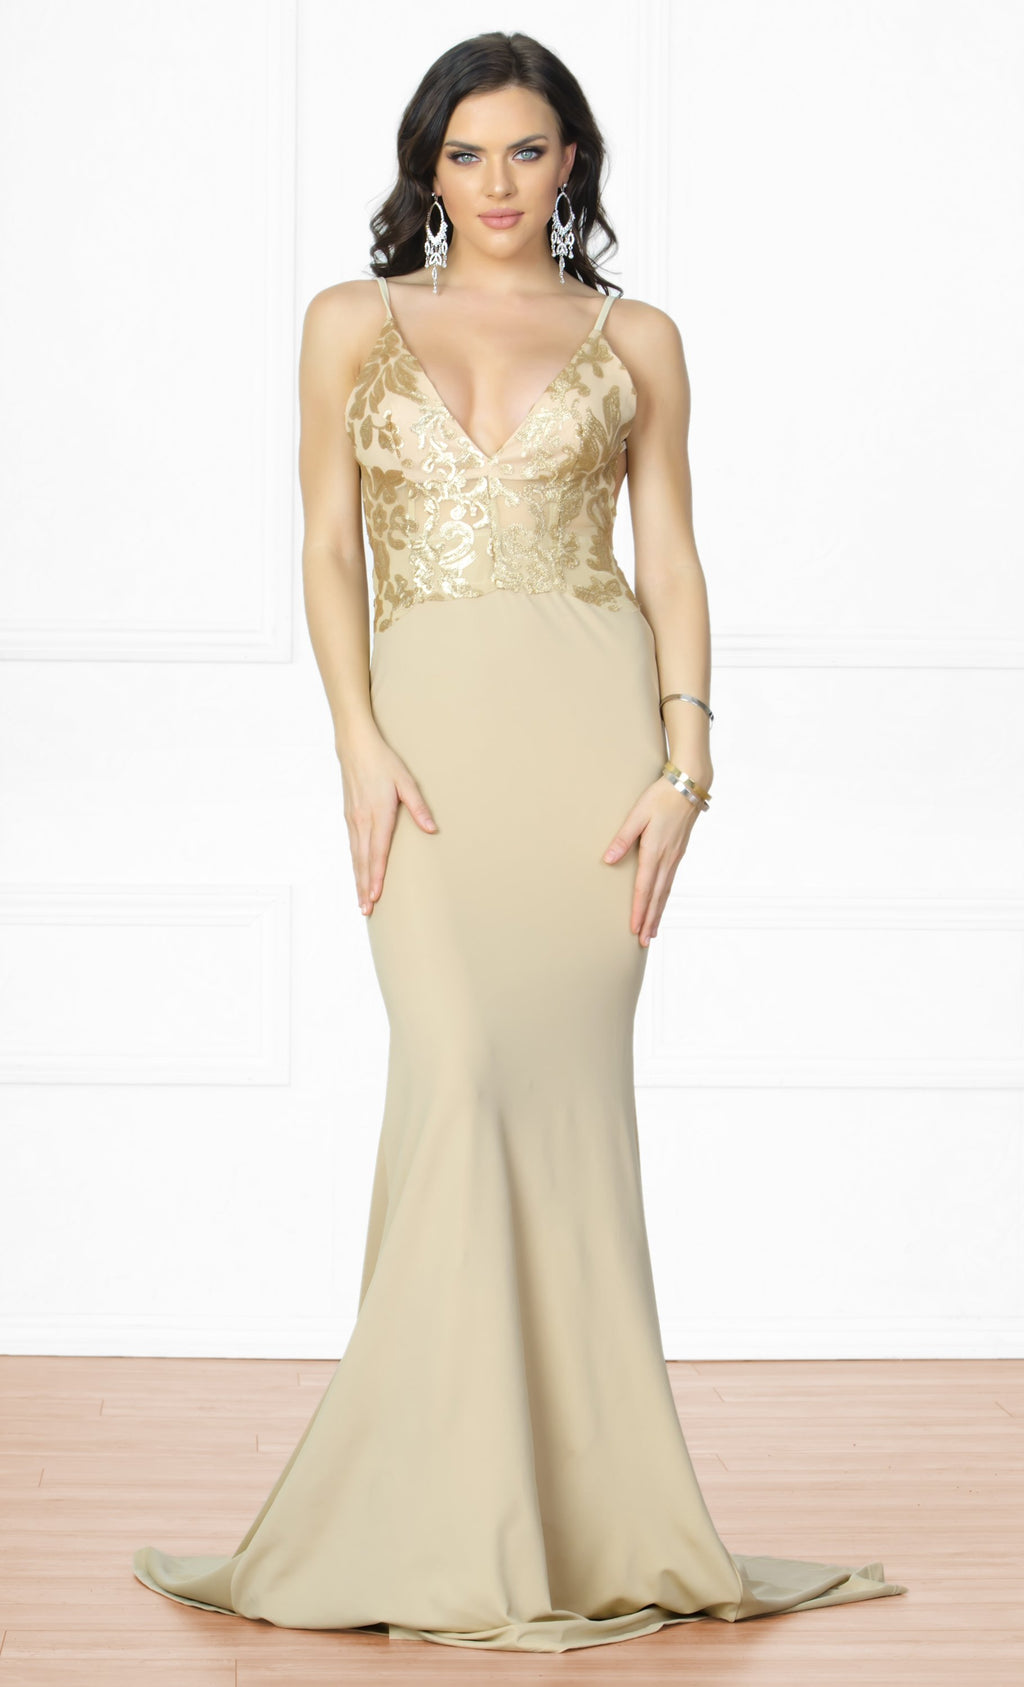 68b3017bbf Indie XO Always Amazing Nude Gold Metallic Lace Spaghetti Strap Plunge V  Neck Backless Ruched Maxi